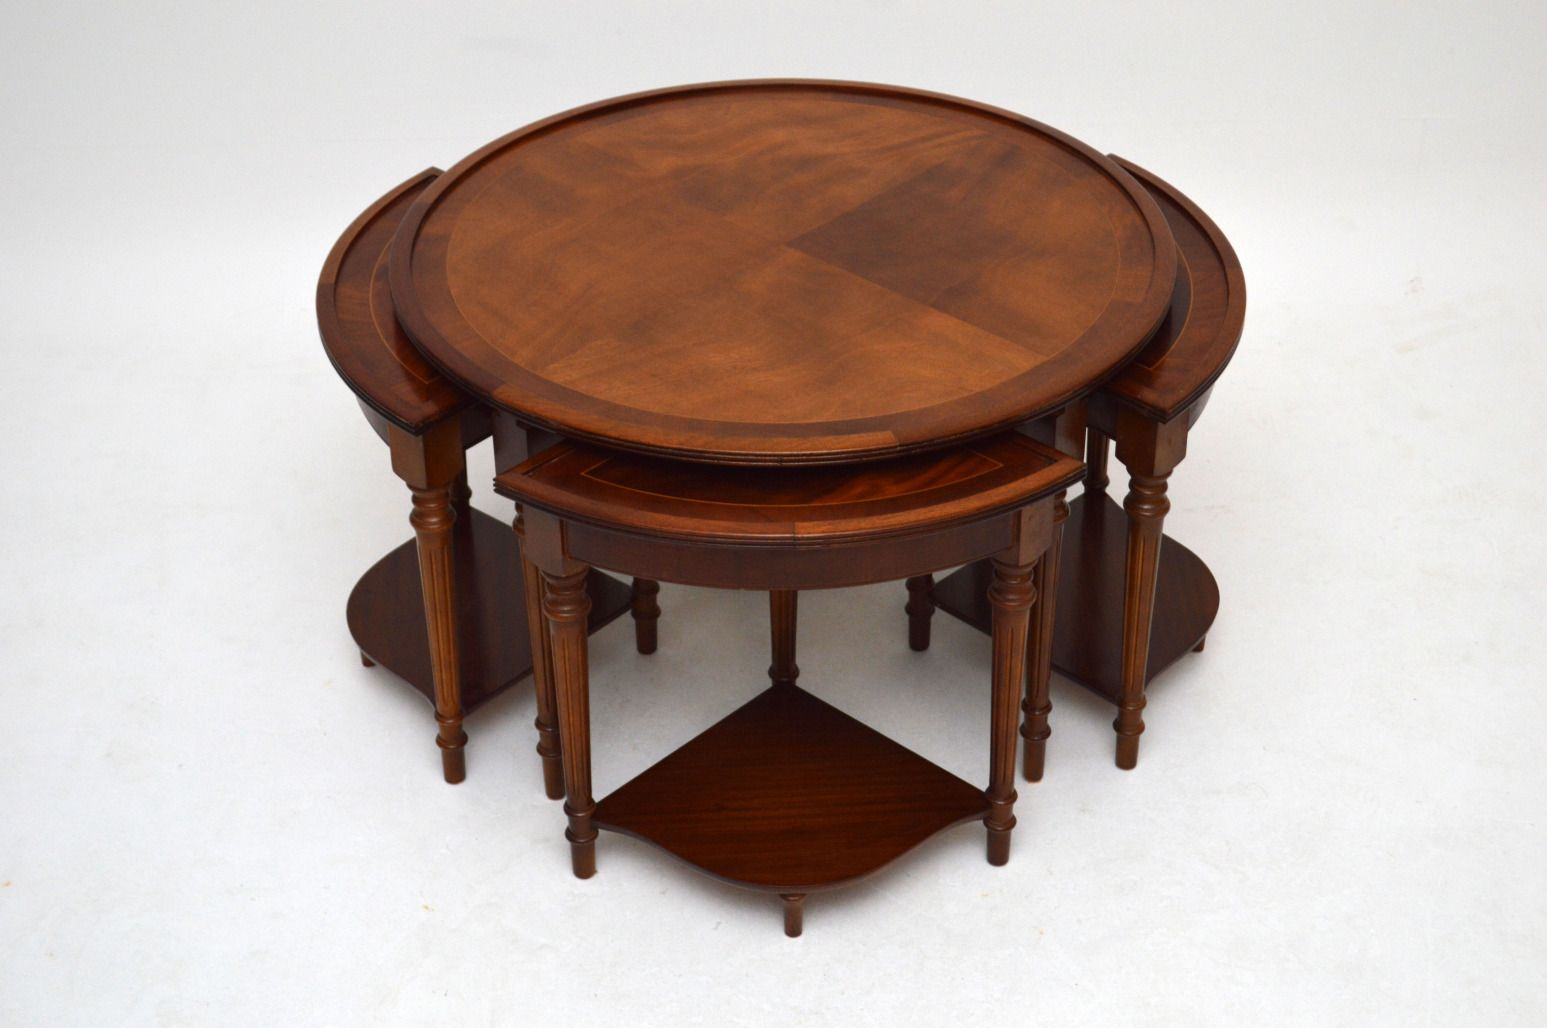 Ordinaire 100+ Round Mahogany Coffee Table   Best Office Furniture Check More At  Http:/